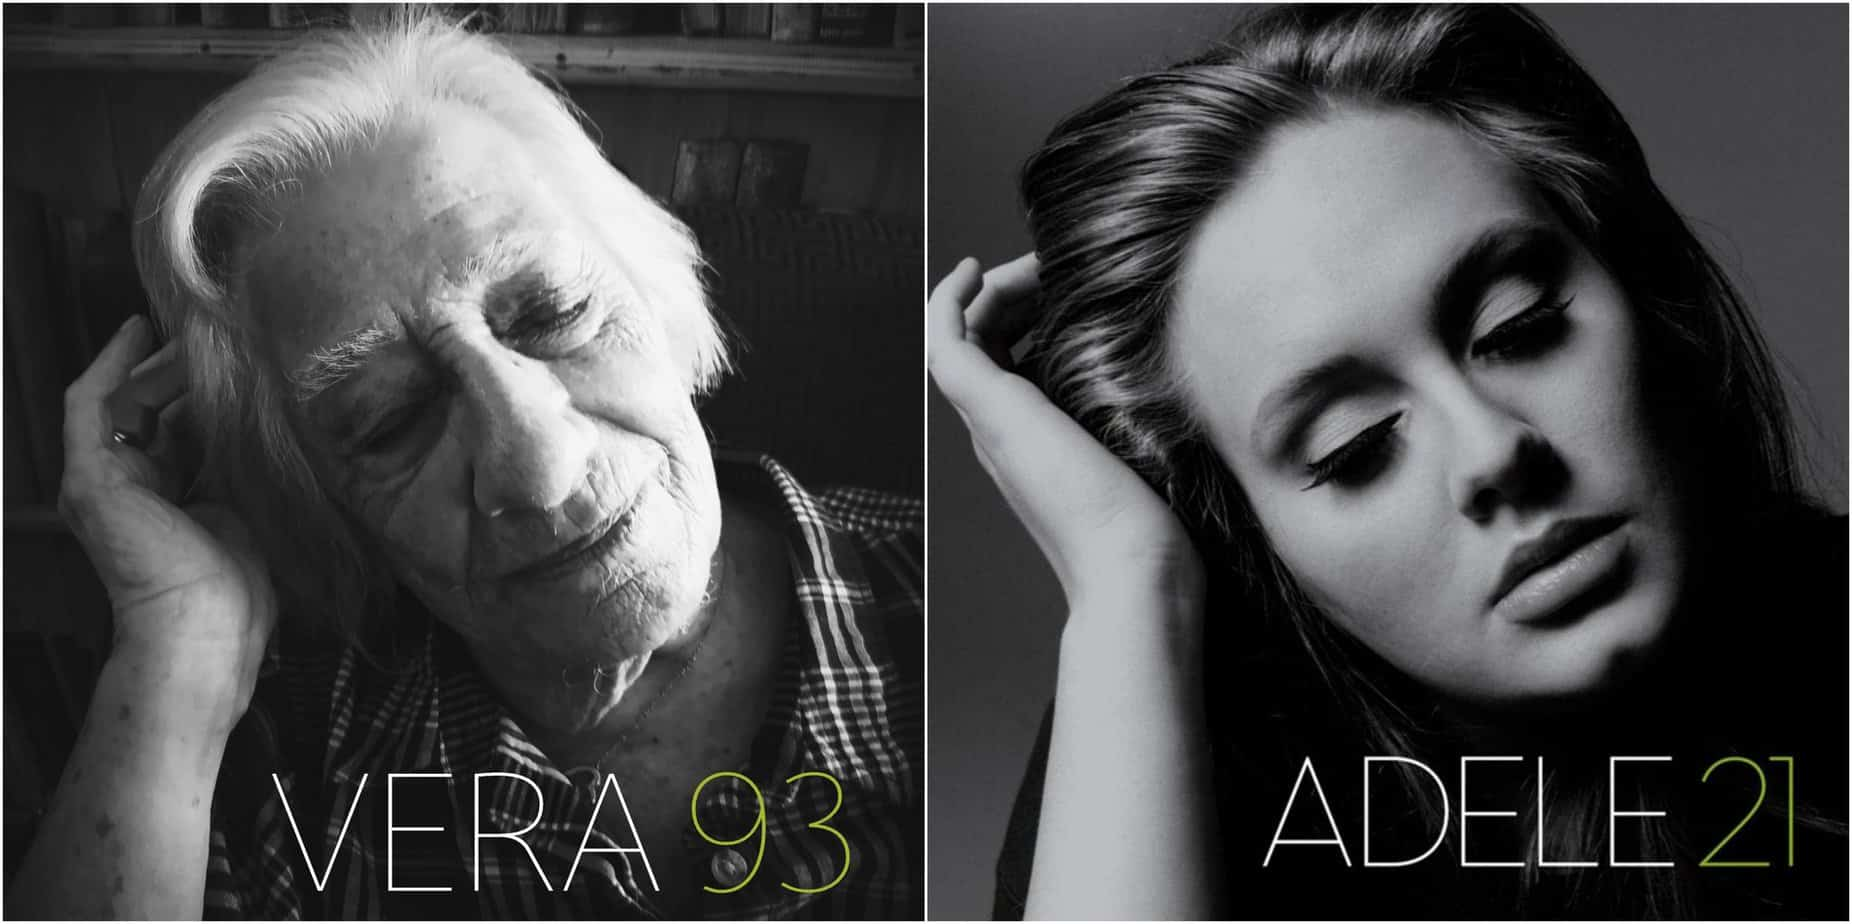 Nursing home residents brilliantly re-create iconic album covers on Twitter